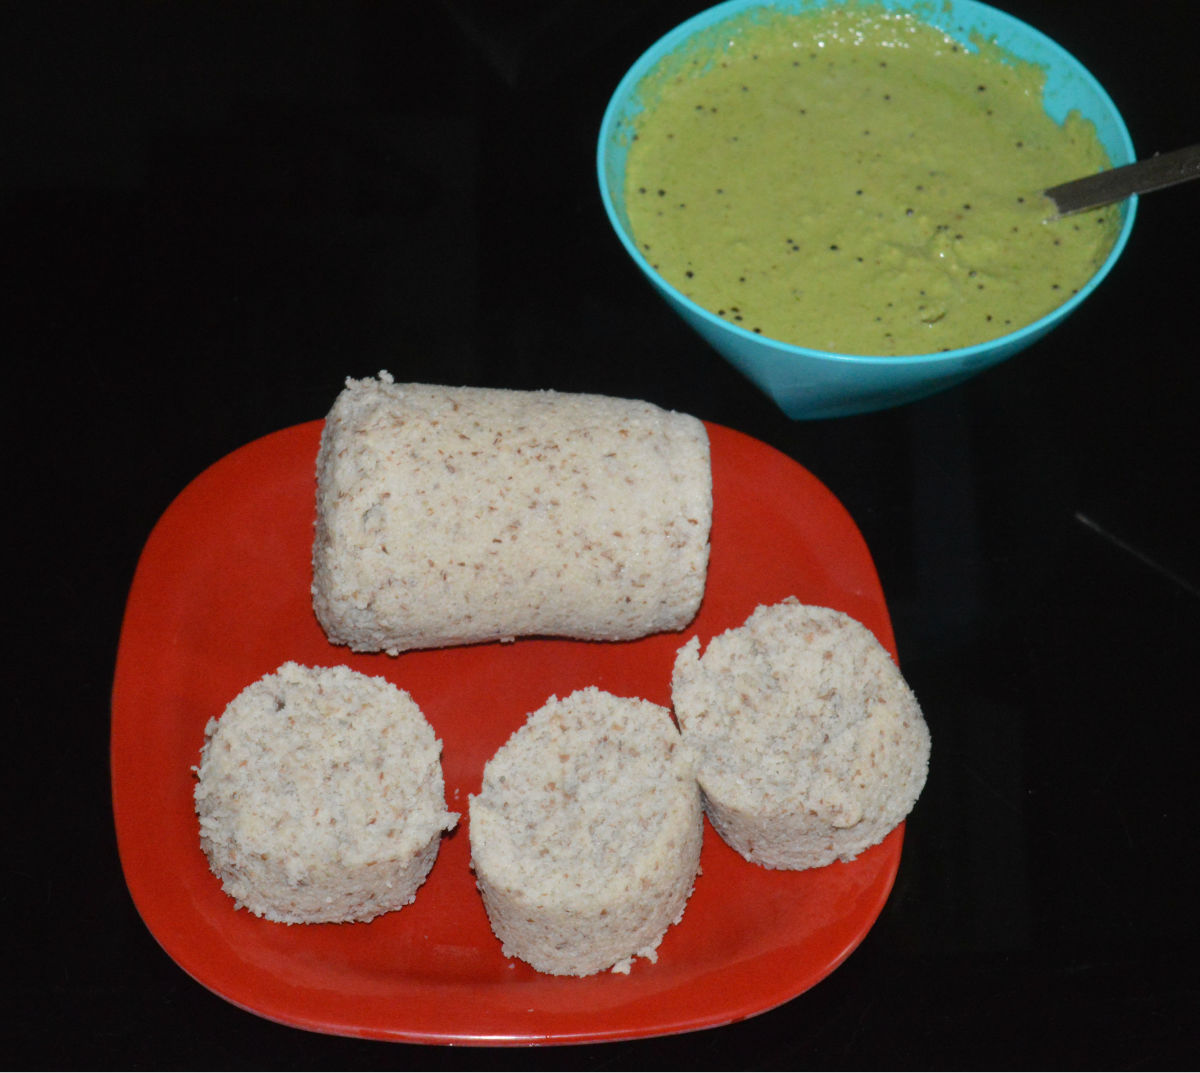 Serve these soft, aromatic idlis with a spicy chutney or sauce. I sprinkled a few drops of coconut oil on these idlis. It was just fantastic.